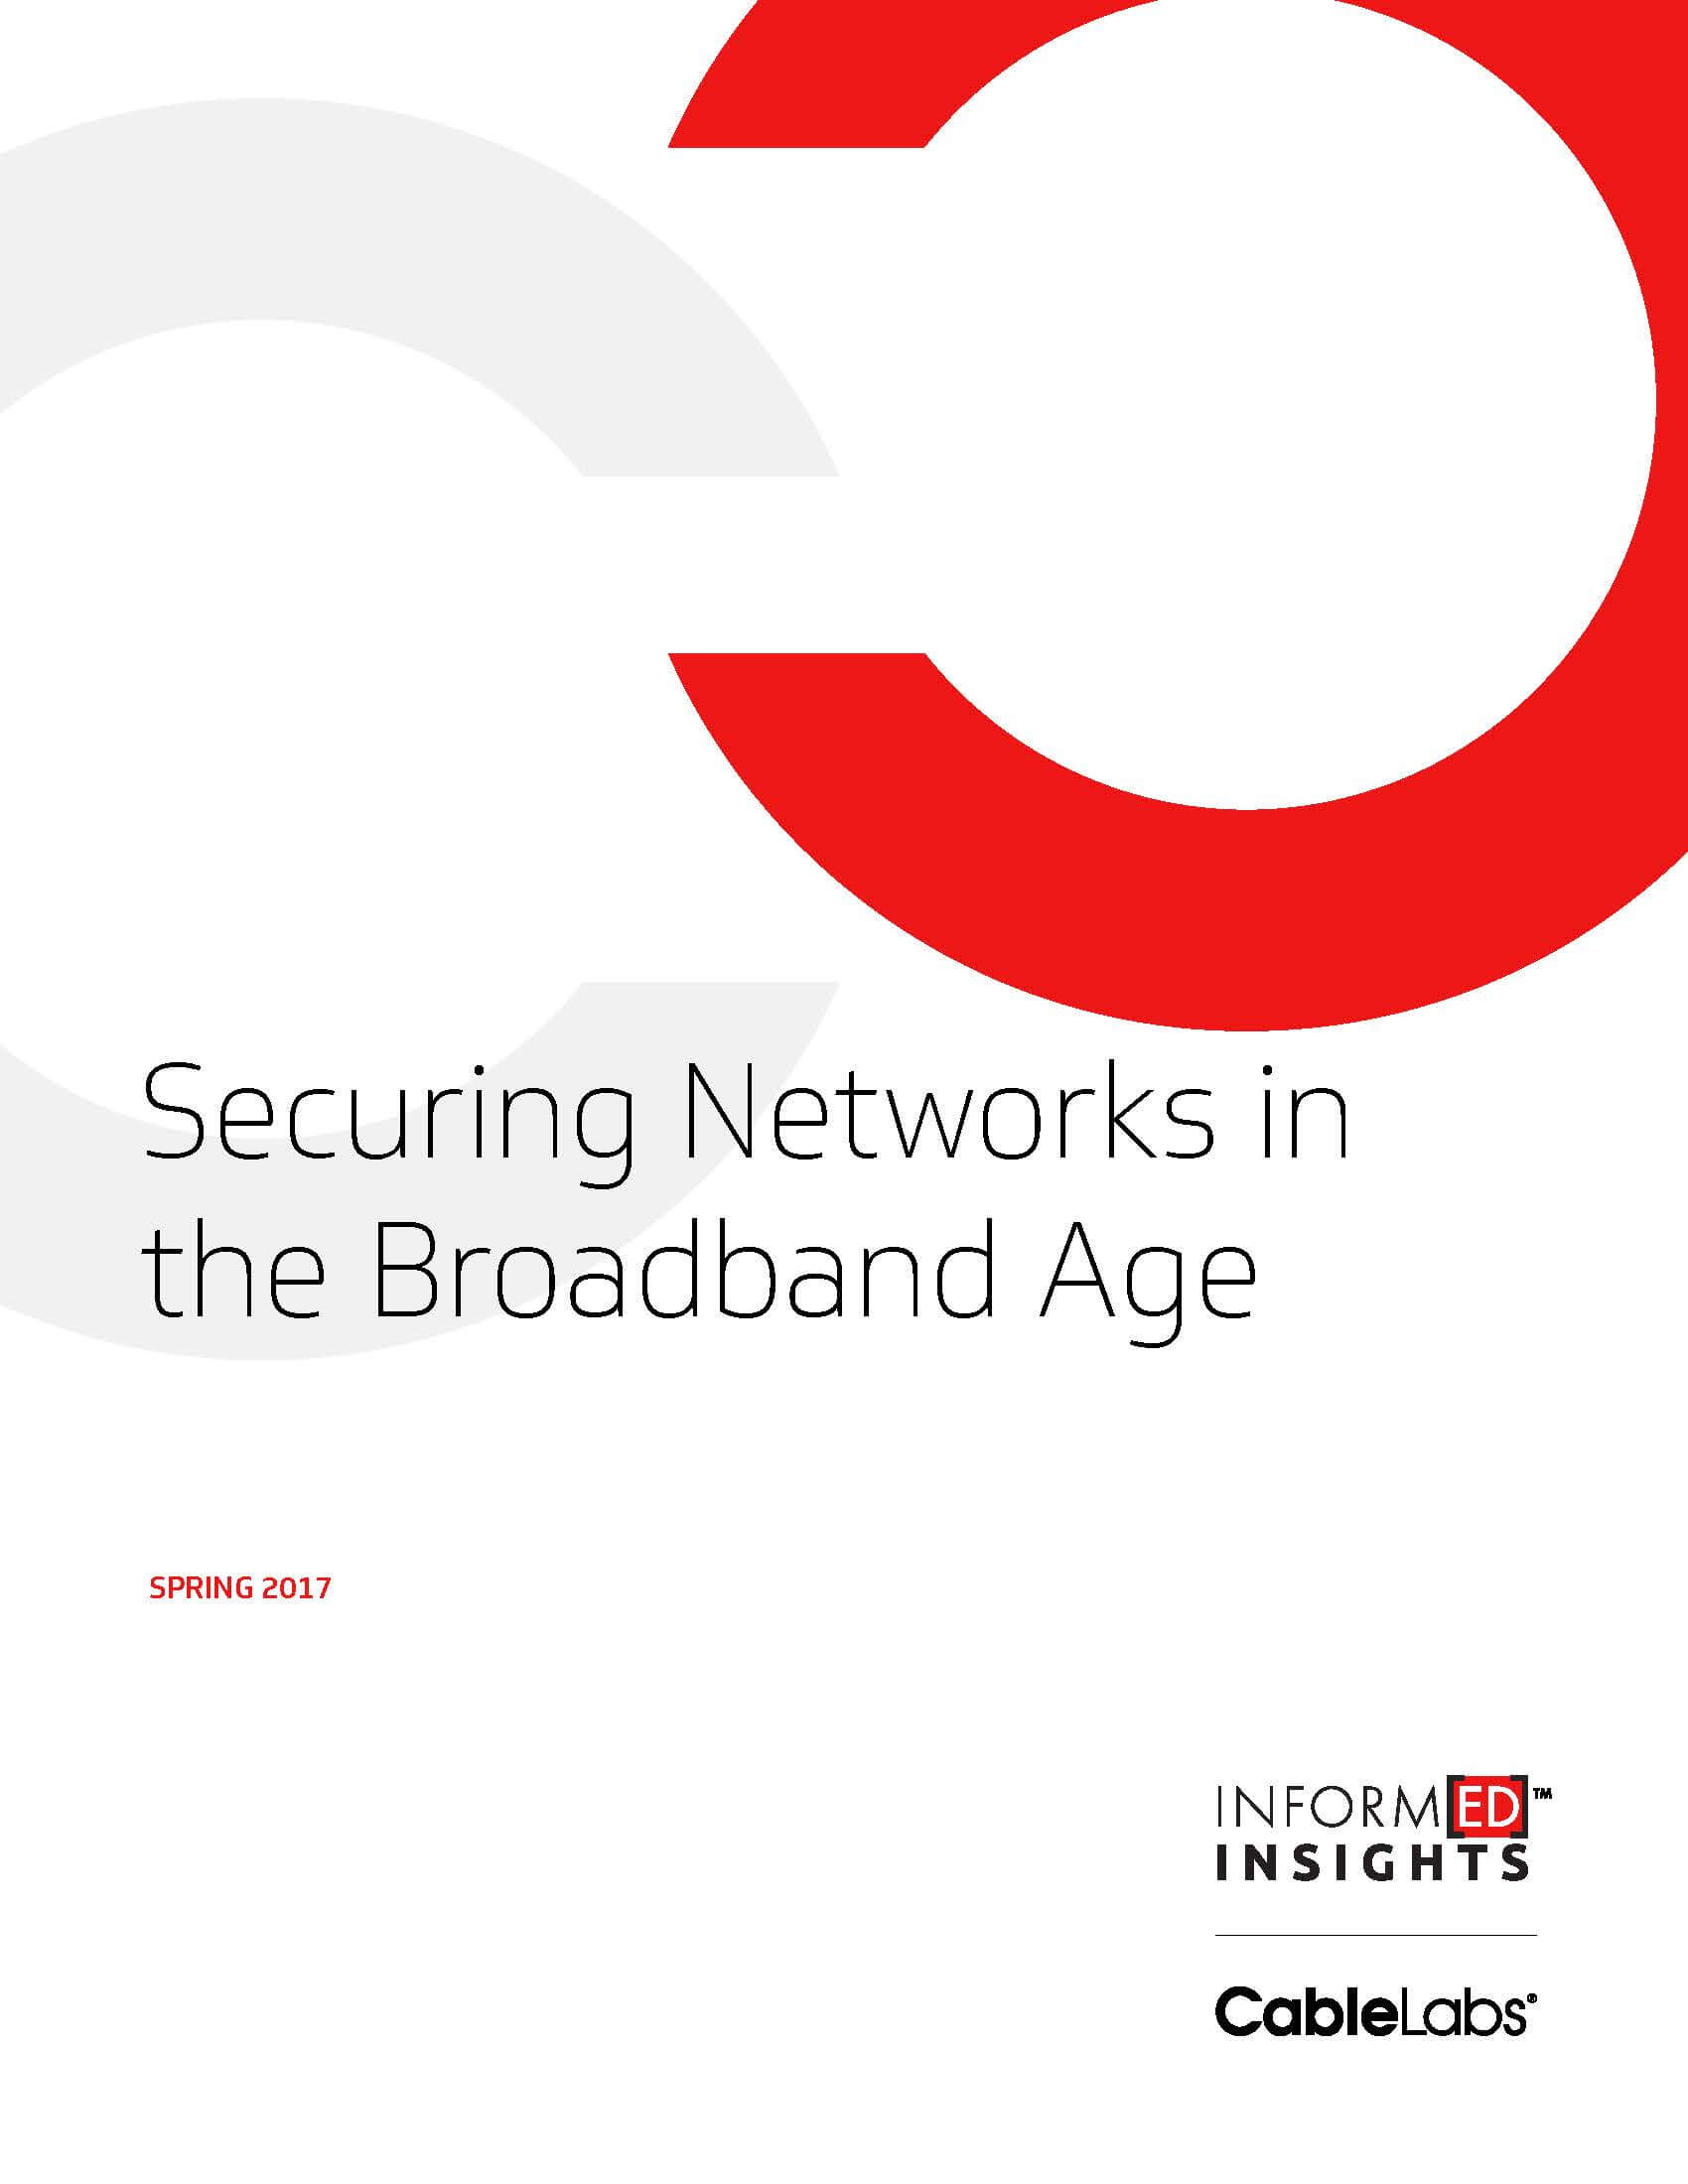 Securing Networks in the Broadband Age